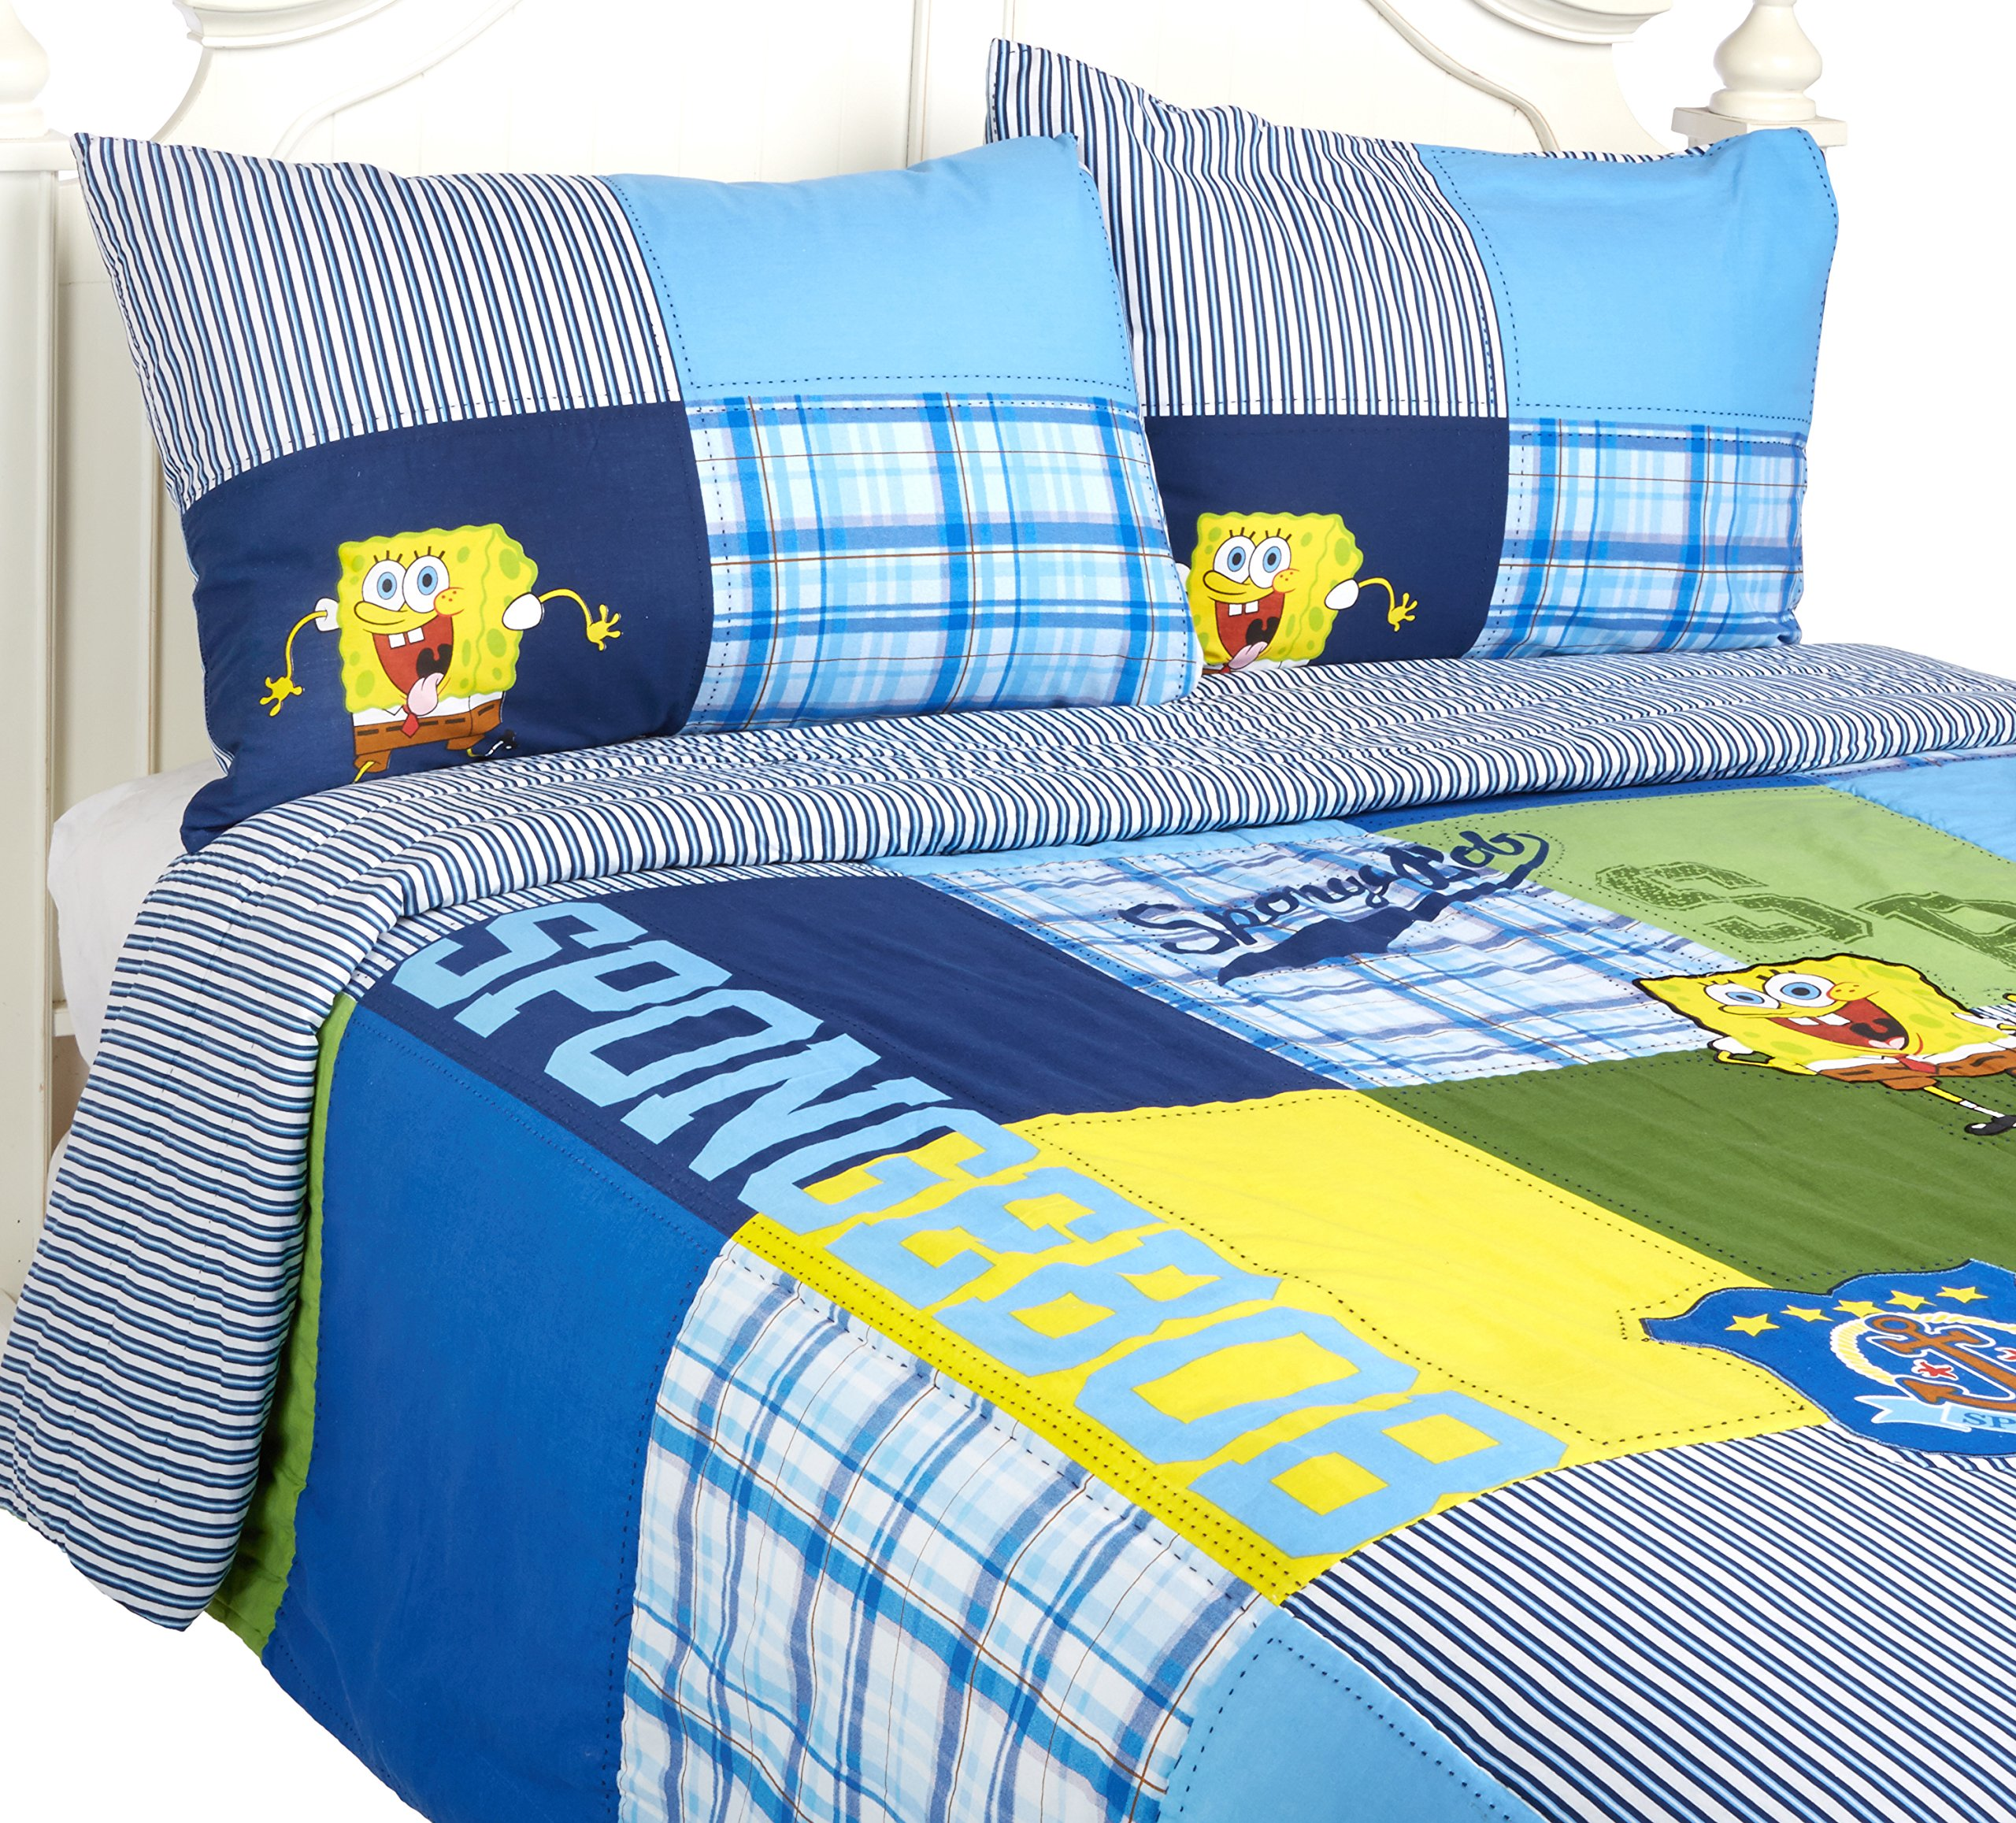 Spongebob Squarepants Throw And Pillow Set : SPONGEBOB Nickelodeon Quilt Set Full & Queen Size Pillow Shams Cotton BED COVER